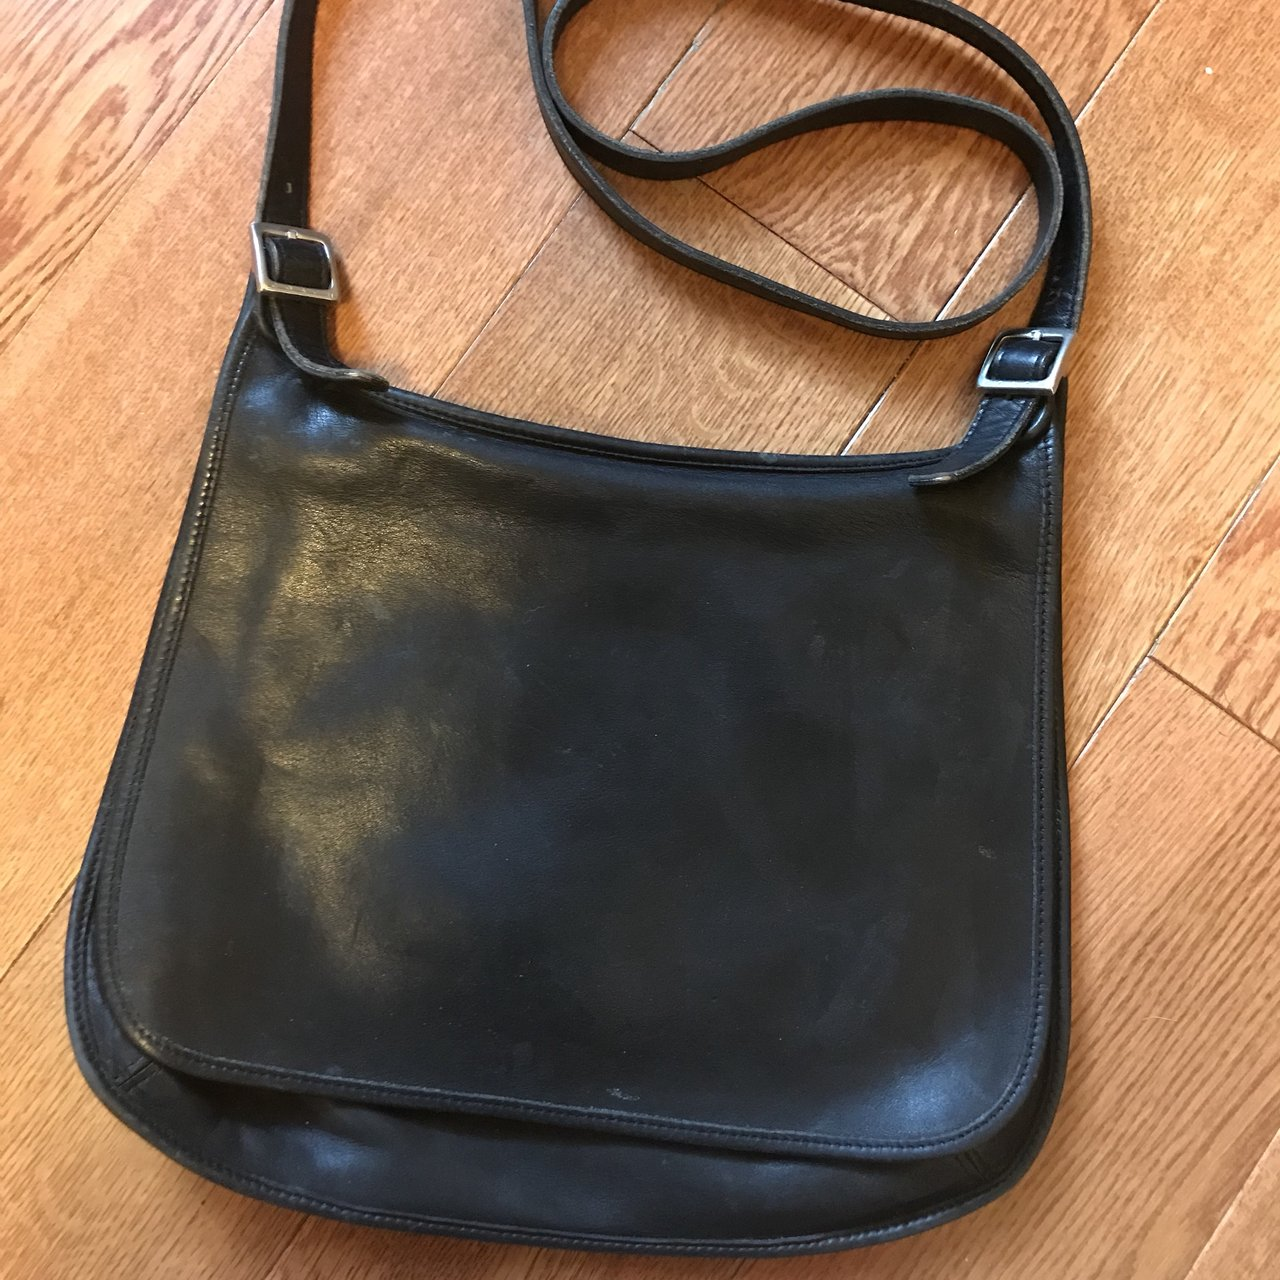 Selling a gently used Vintage Coach over the shoulder purse - Depop df3ecd04a1c67